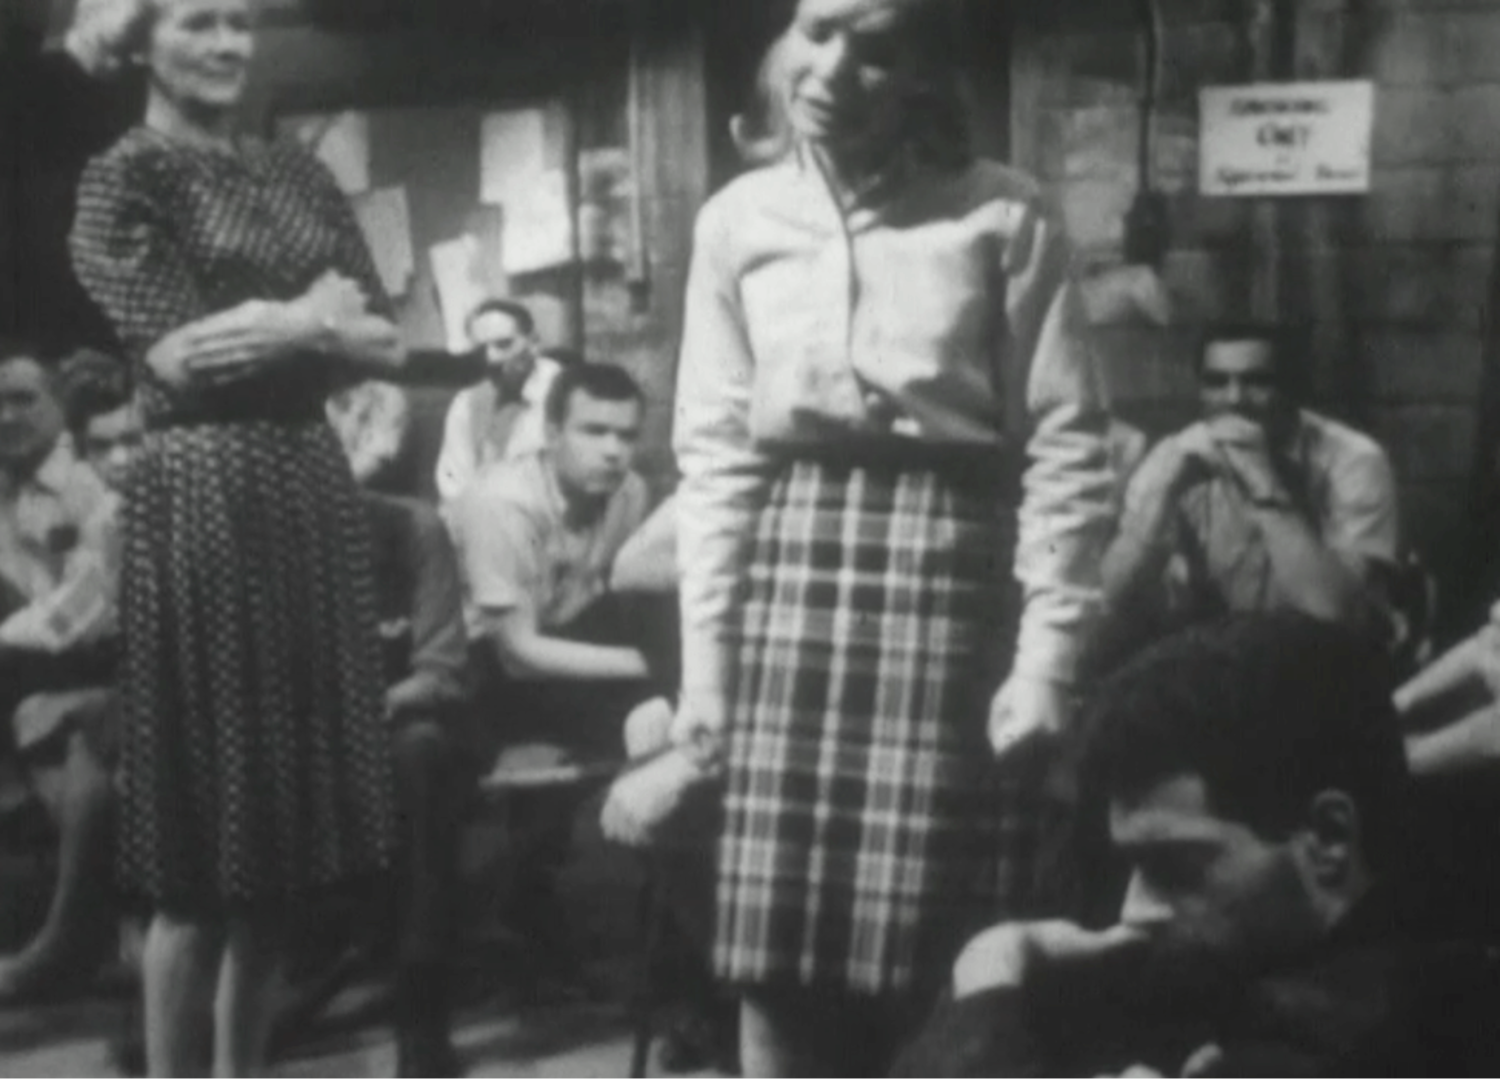 A still from the 1964 government produced film, Public Shelter Living: The Story of Shelter 104, which dramatized fallout shelter living.